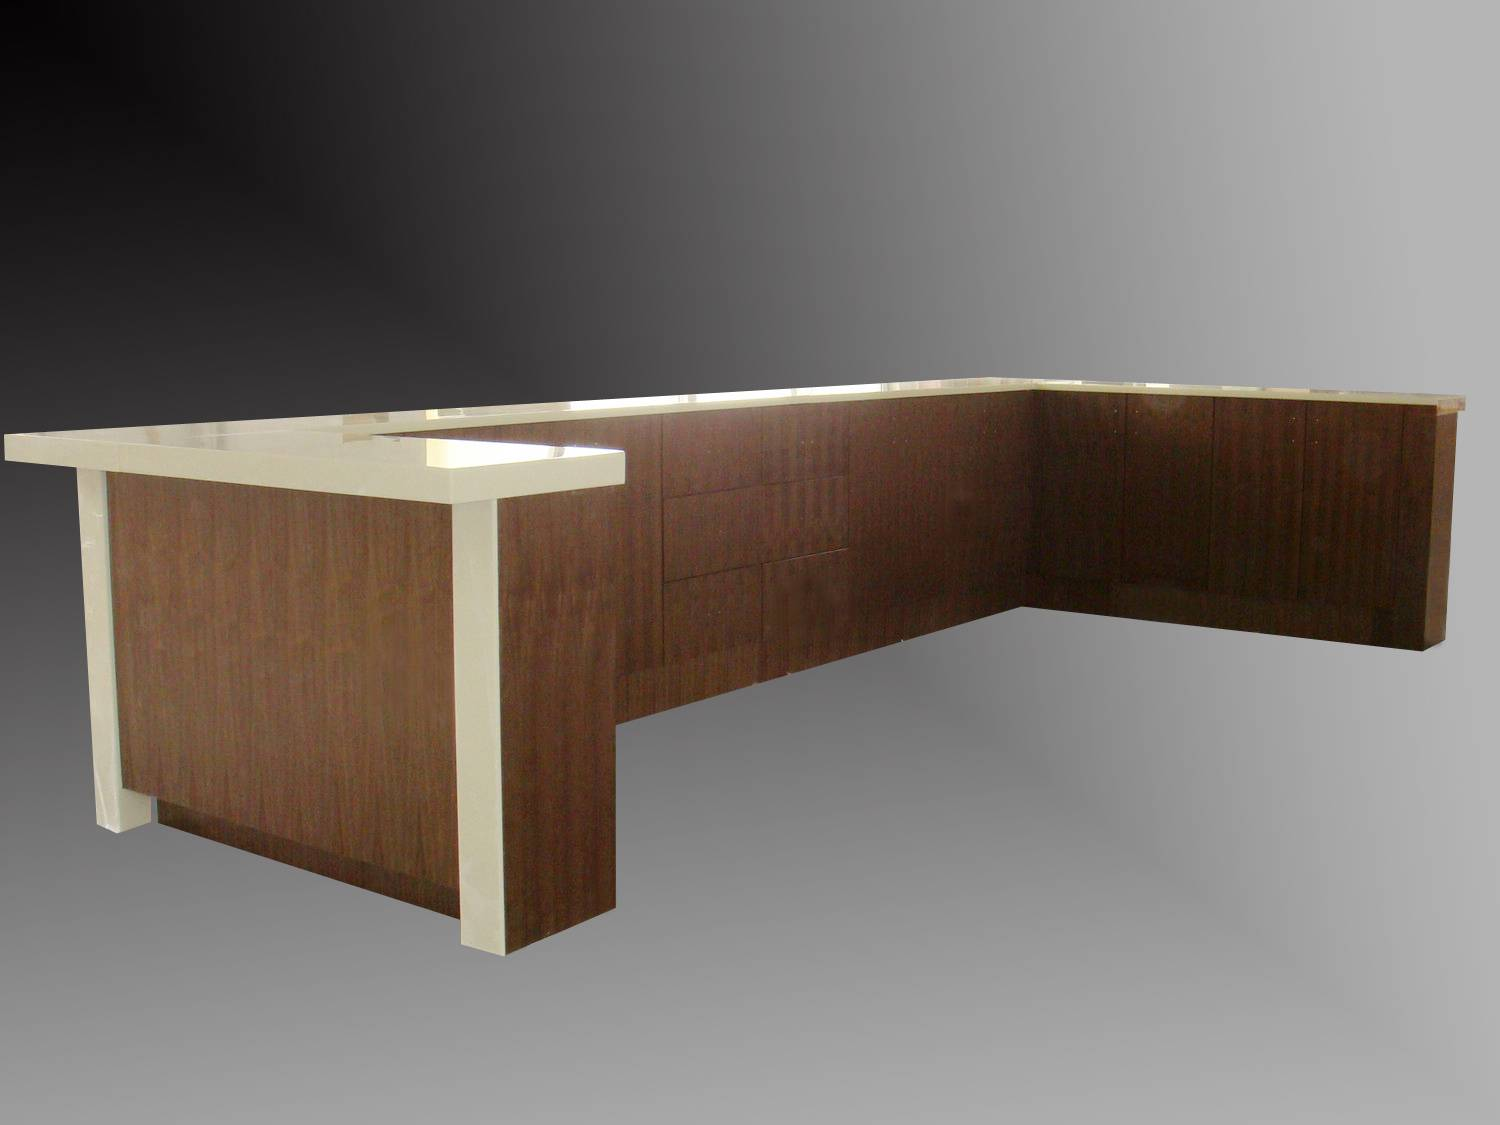 Wooden style night club bar counter - Tell World Solid Surface Co., Ltd